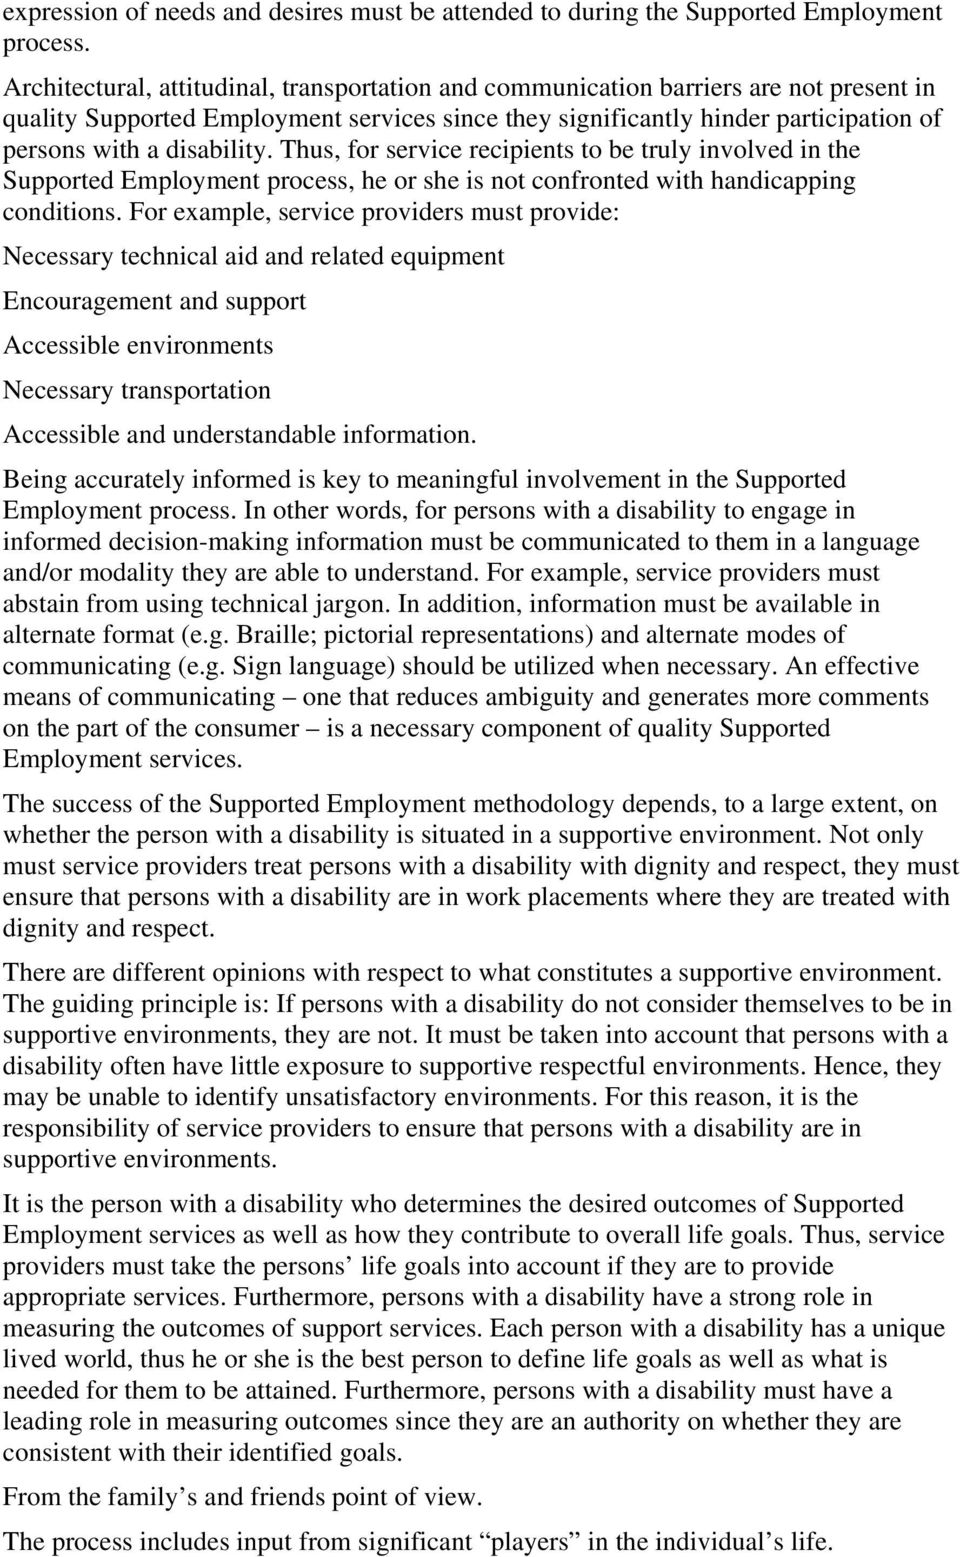 disability. Thus, for service recipients to be truly involved in the Supported Employment process, he or she is not confronted with handicapping conditions.